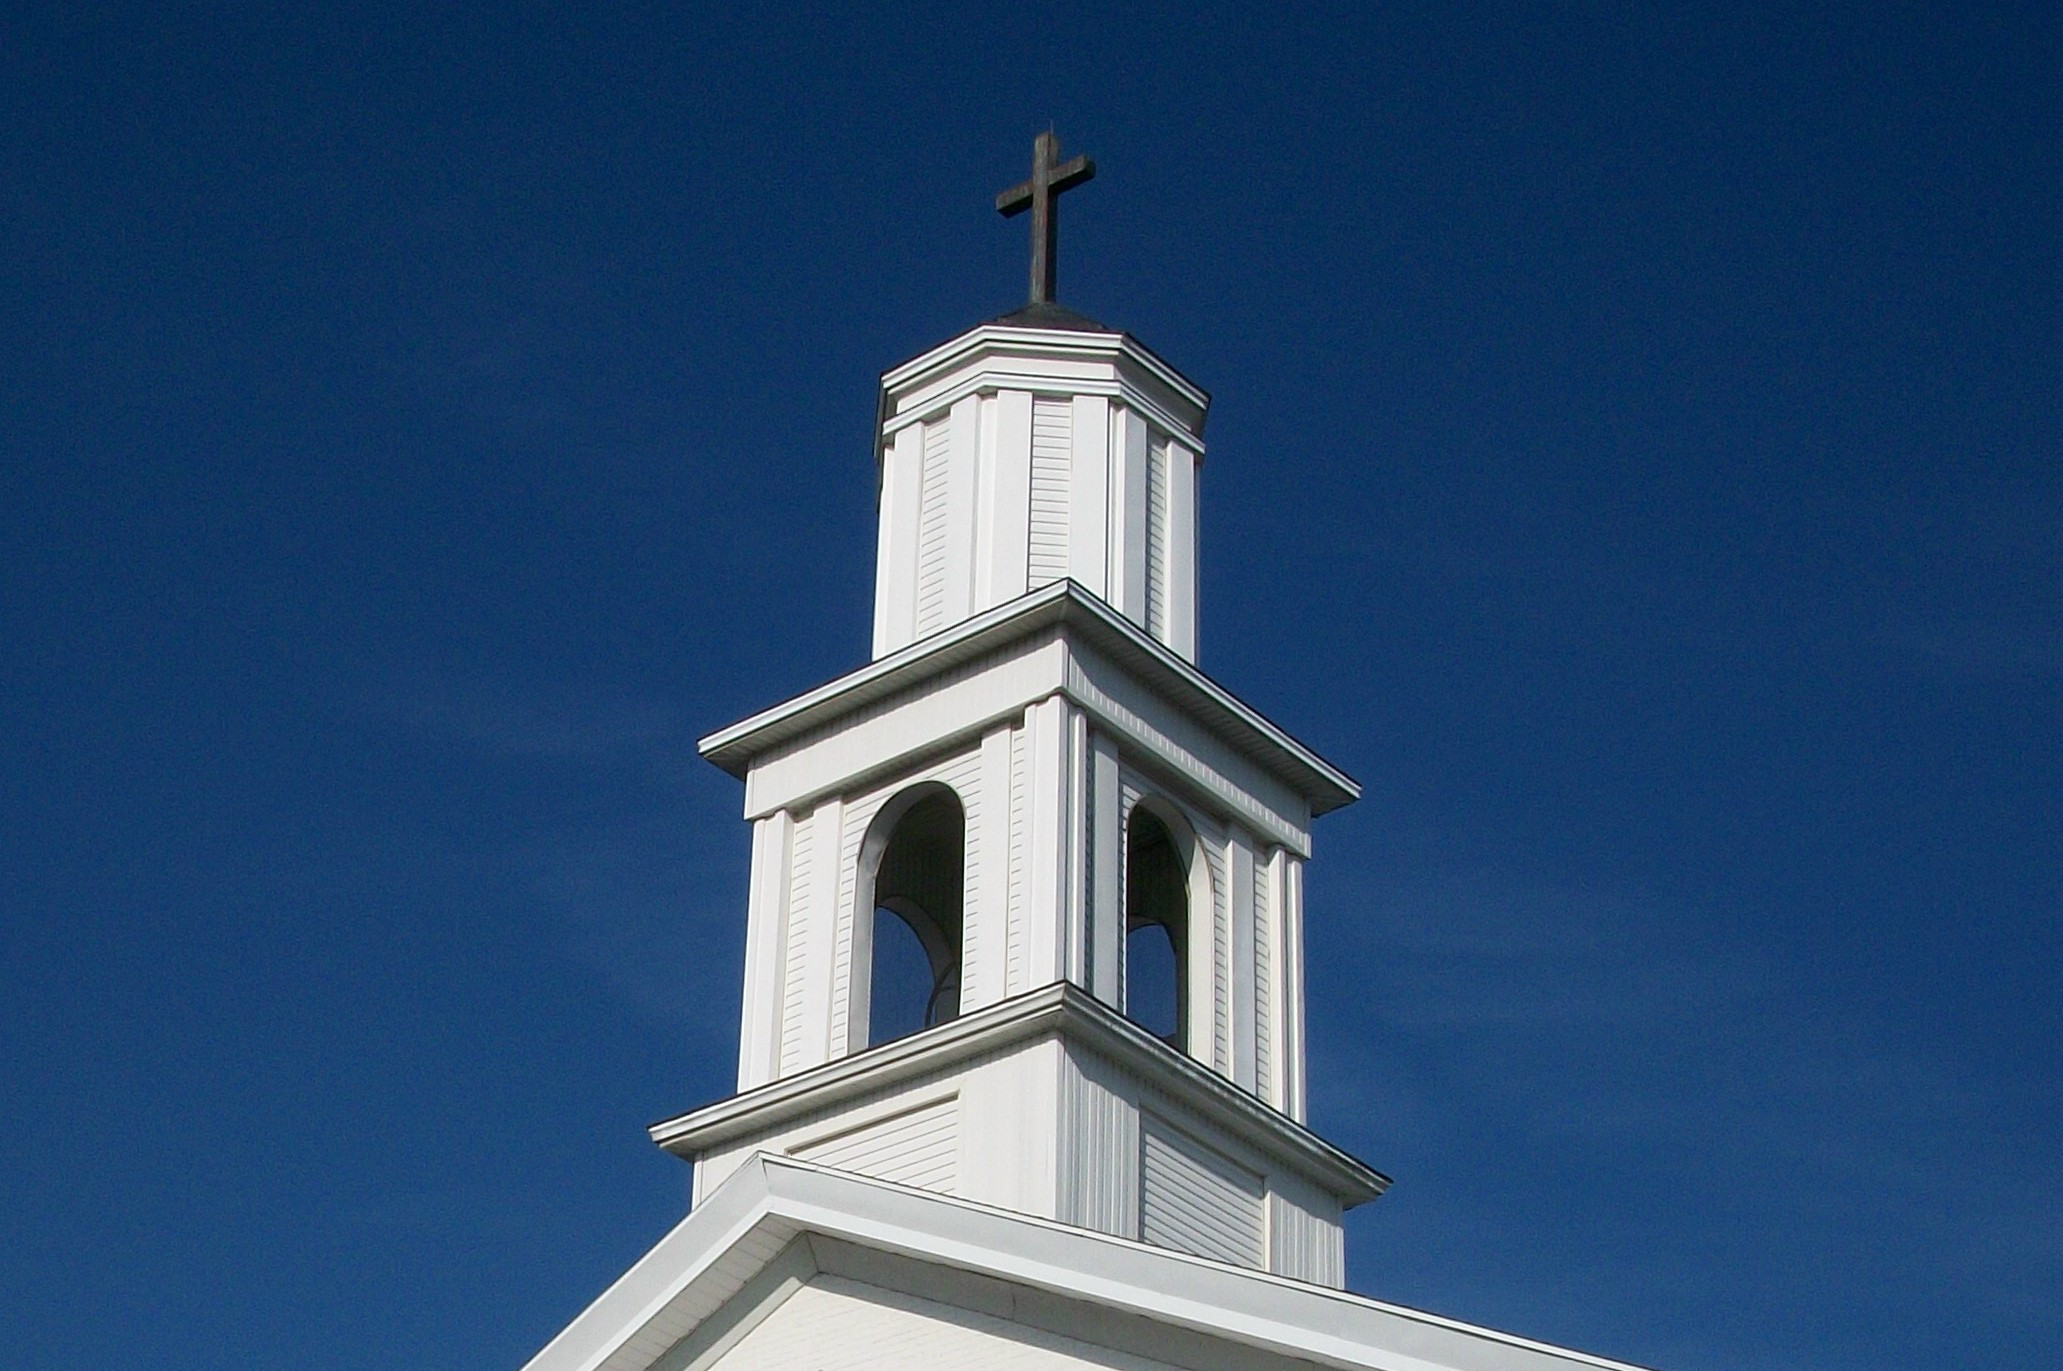 Steeple against blue sky